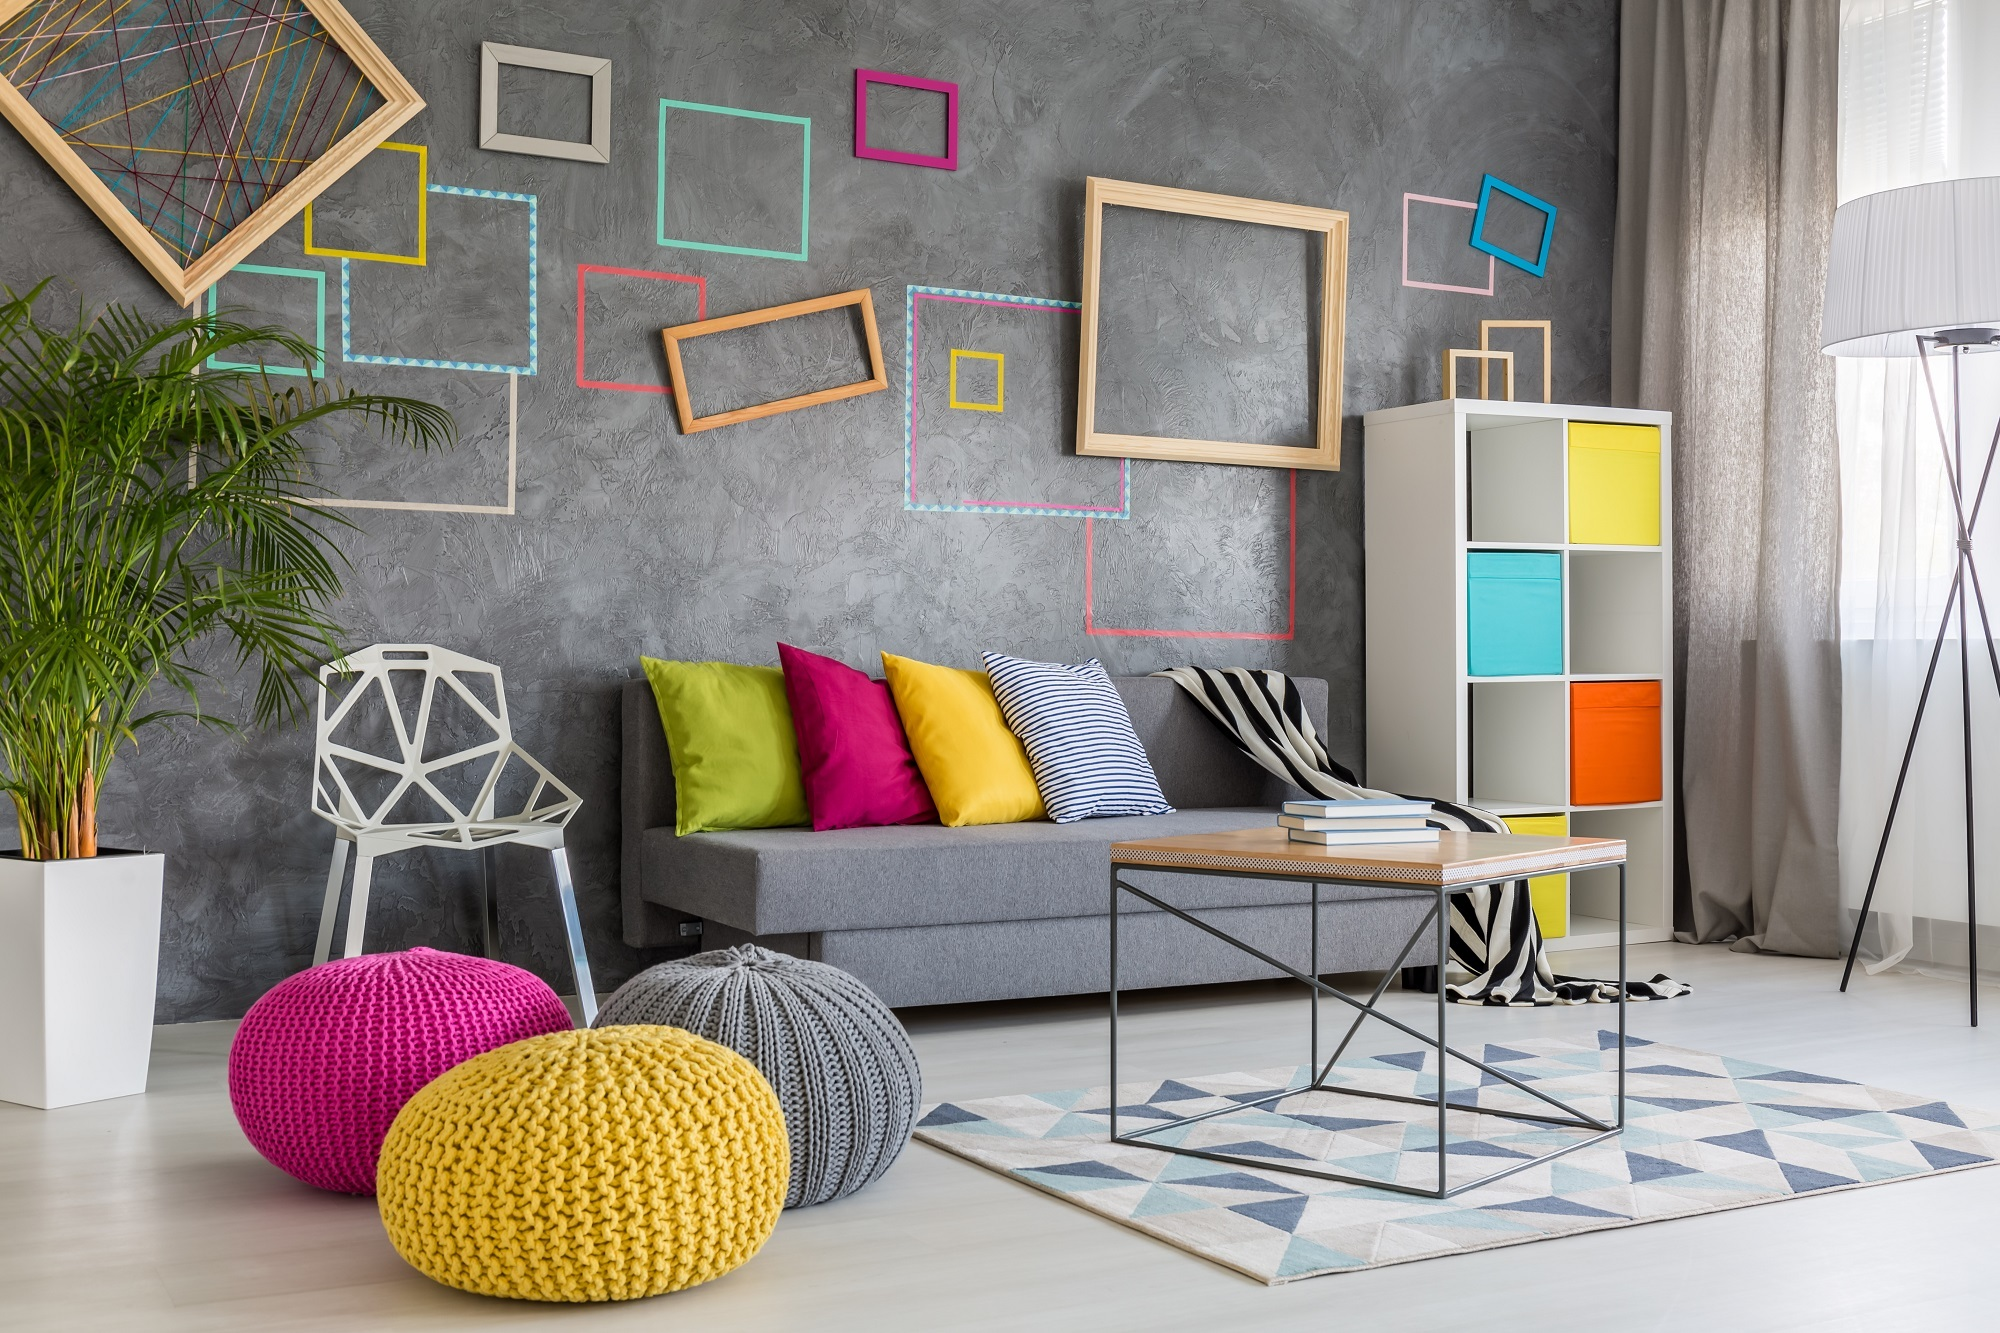 Landlord-Friendly Ways to Decorate a Rental Property